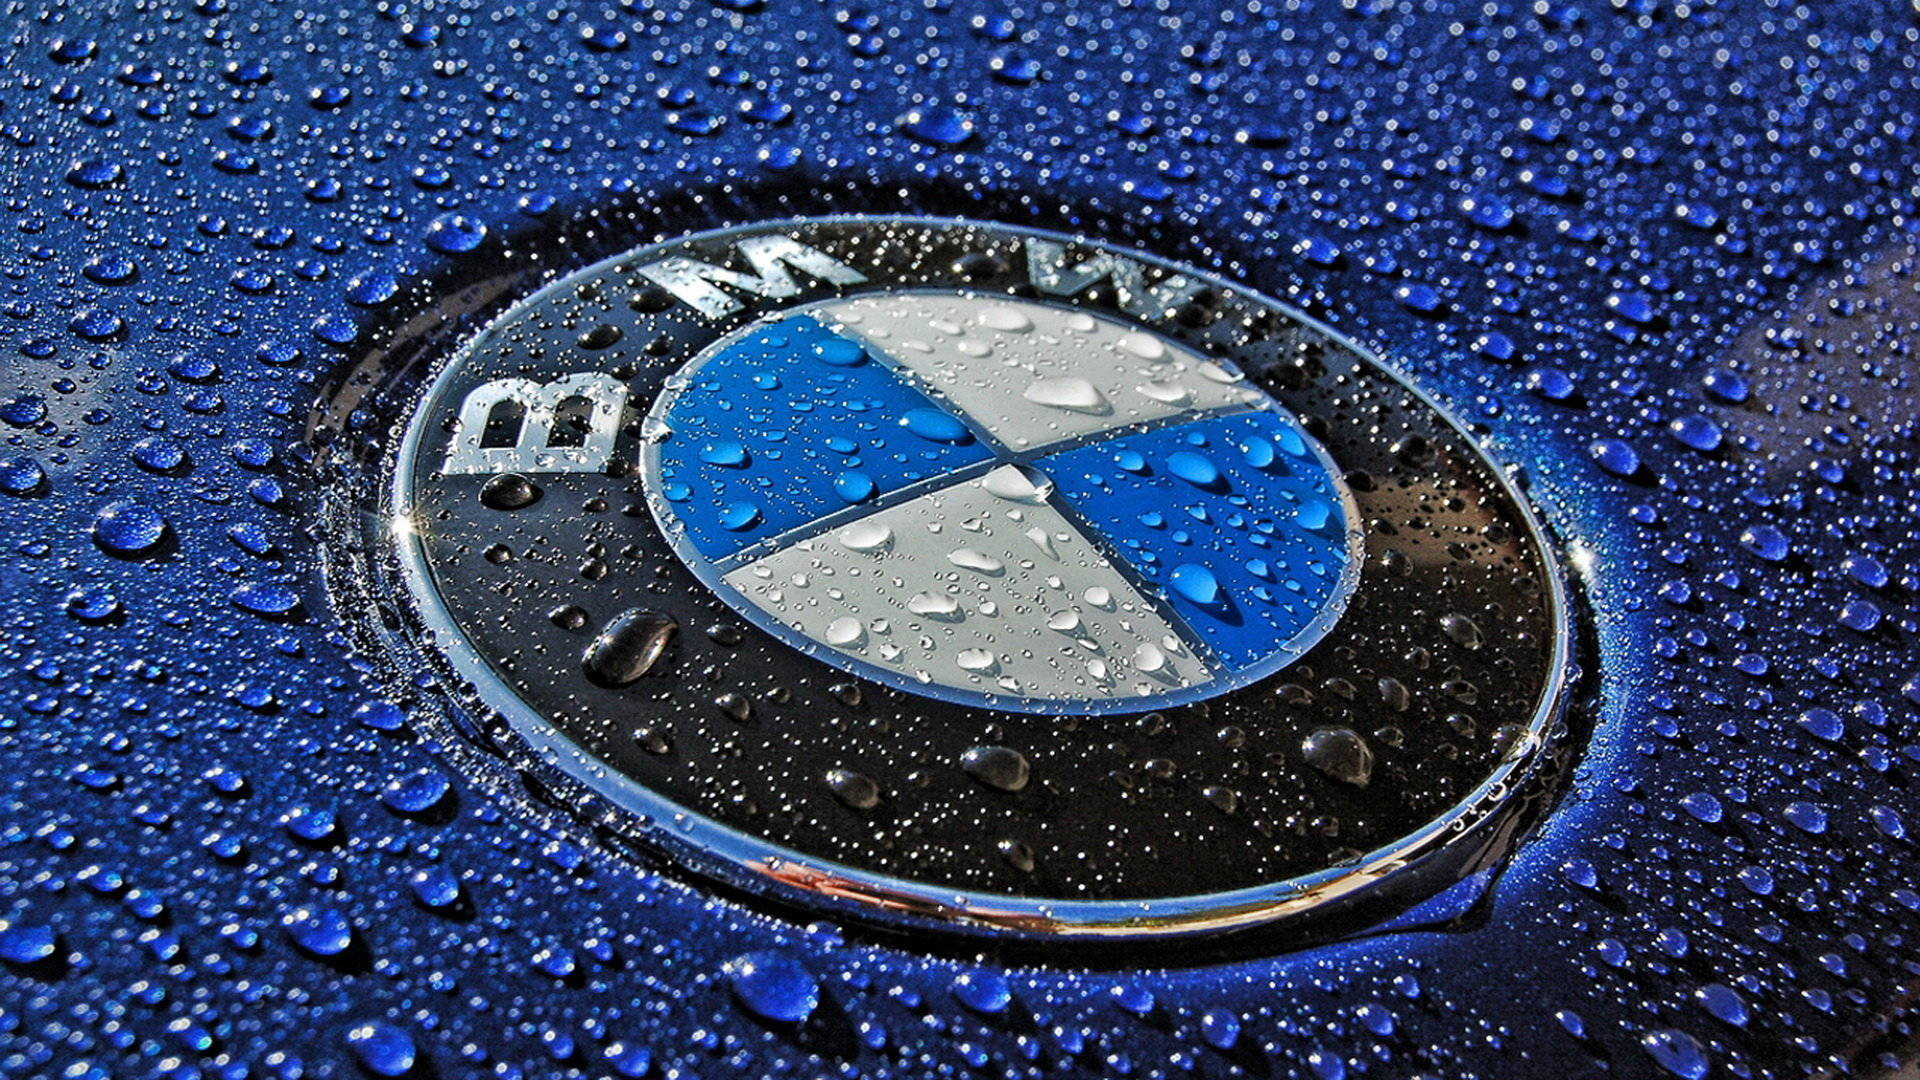 Logos Wallpapers And Bmw On Pinterest